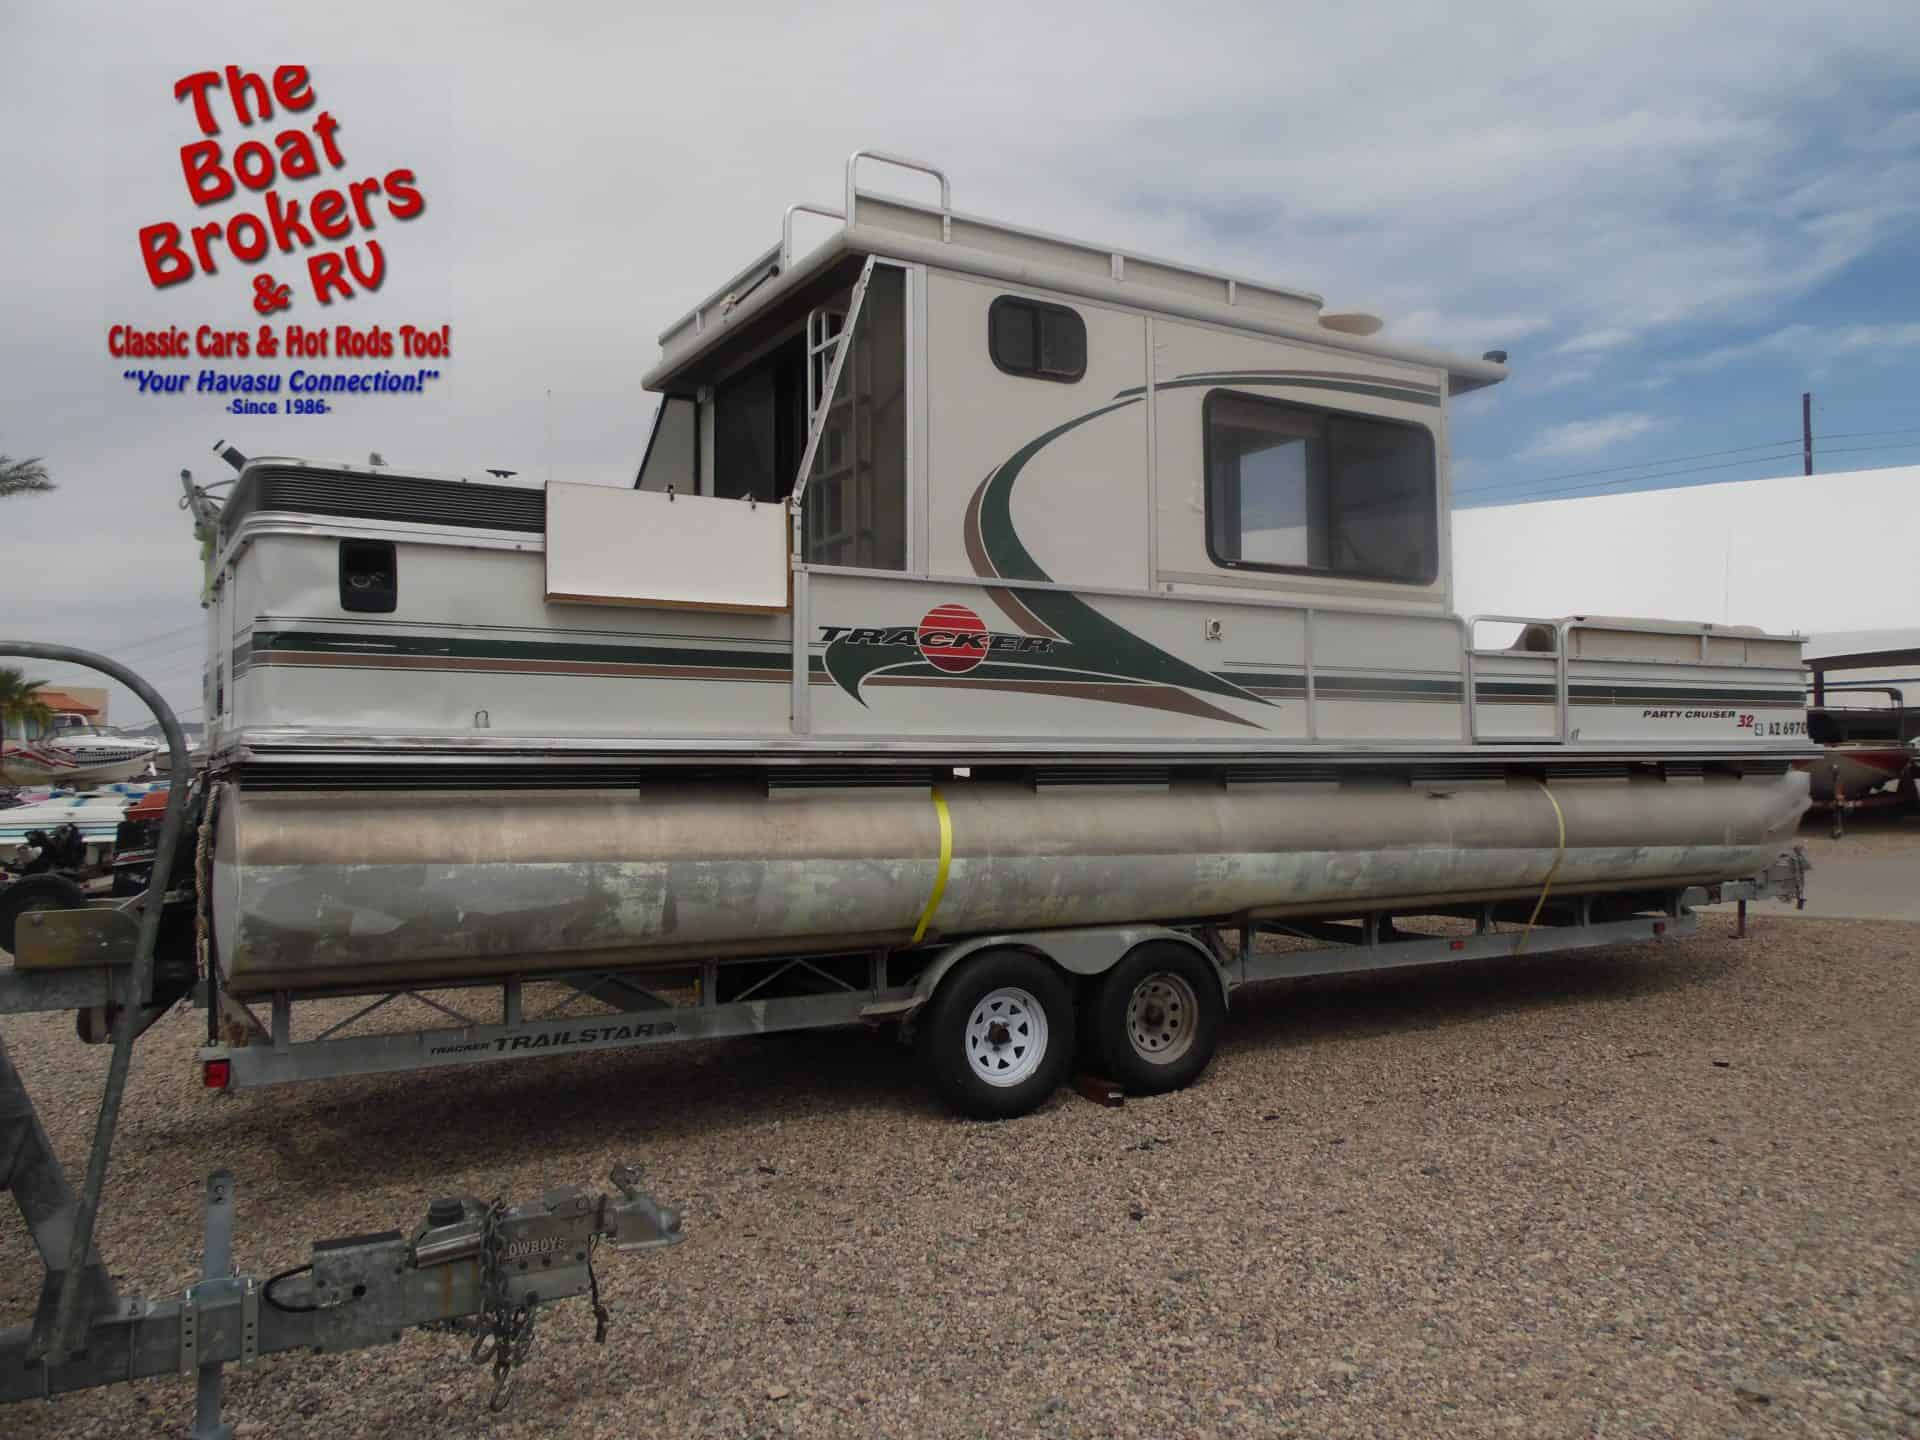 2000 Tracker Party Barge 32ft Pontoon - The Boat Brokers ...